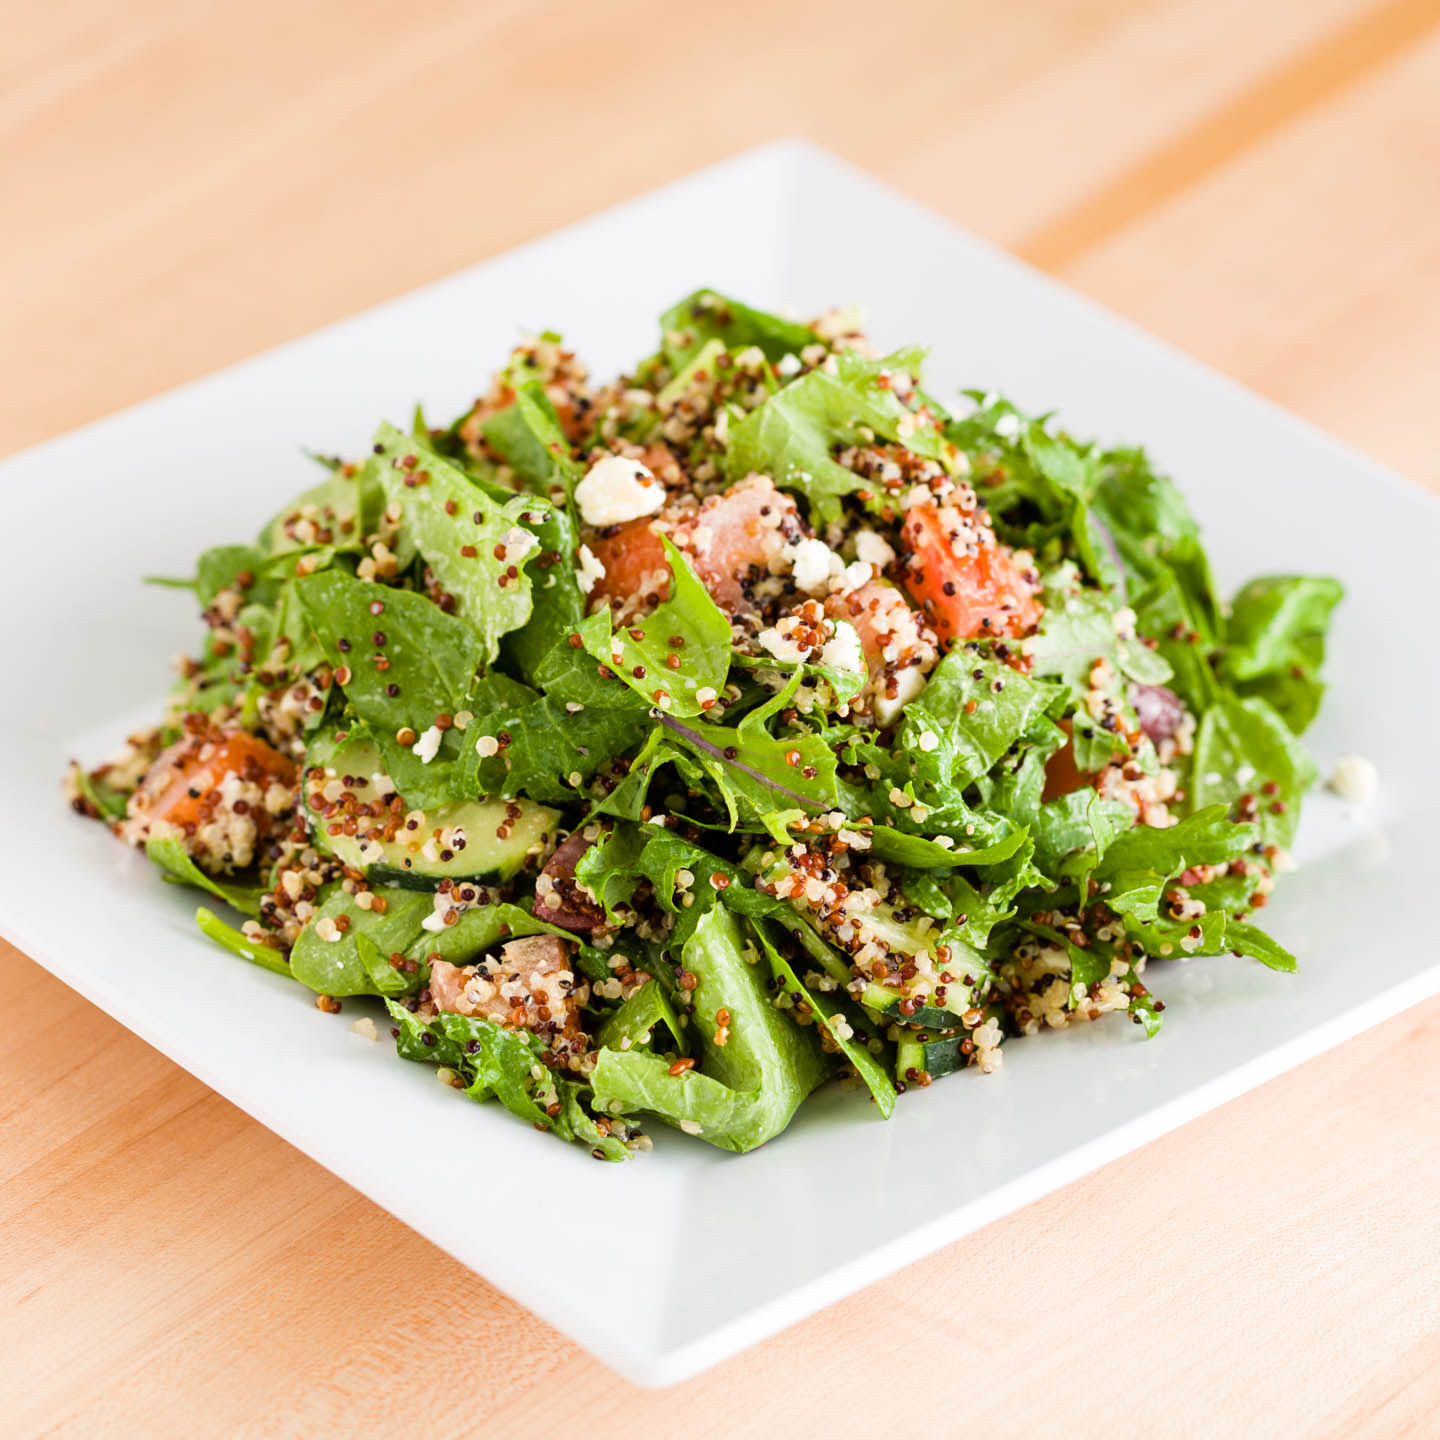 Superfood salad with quinoa, kale, feta